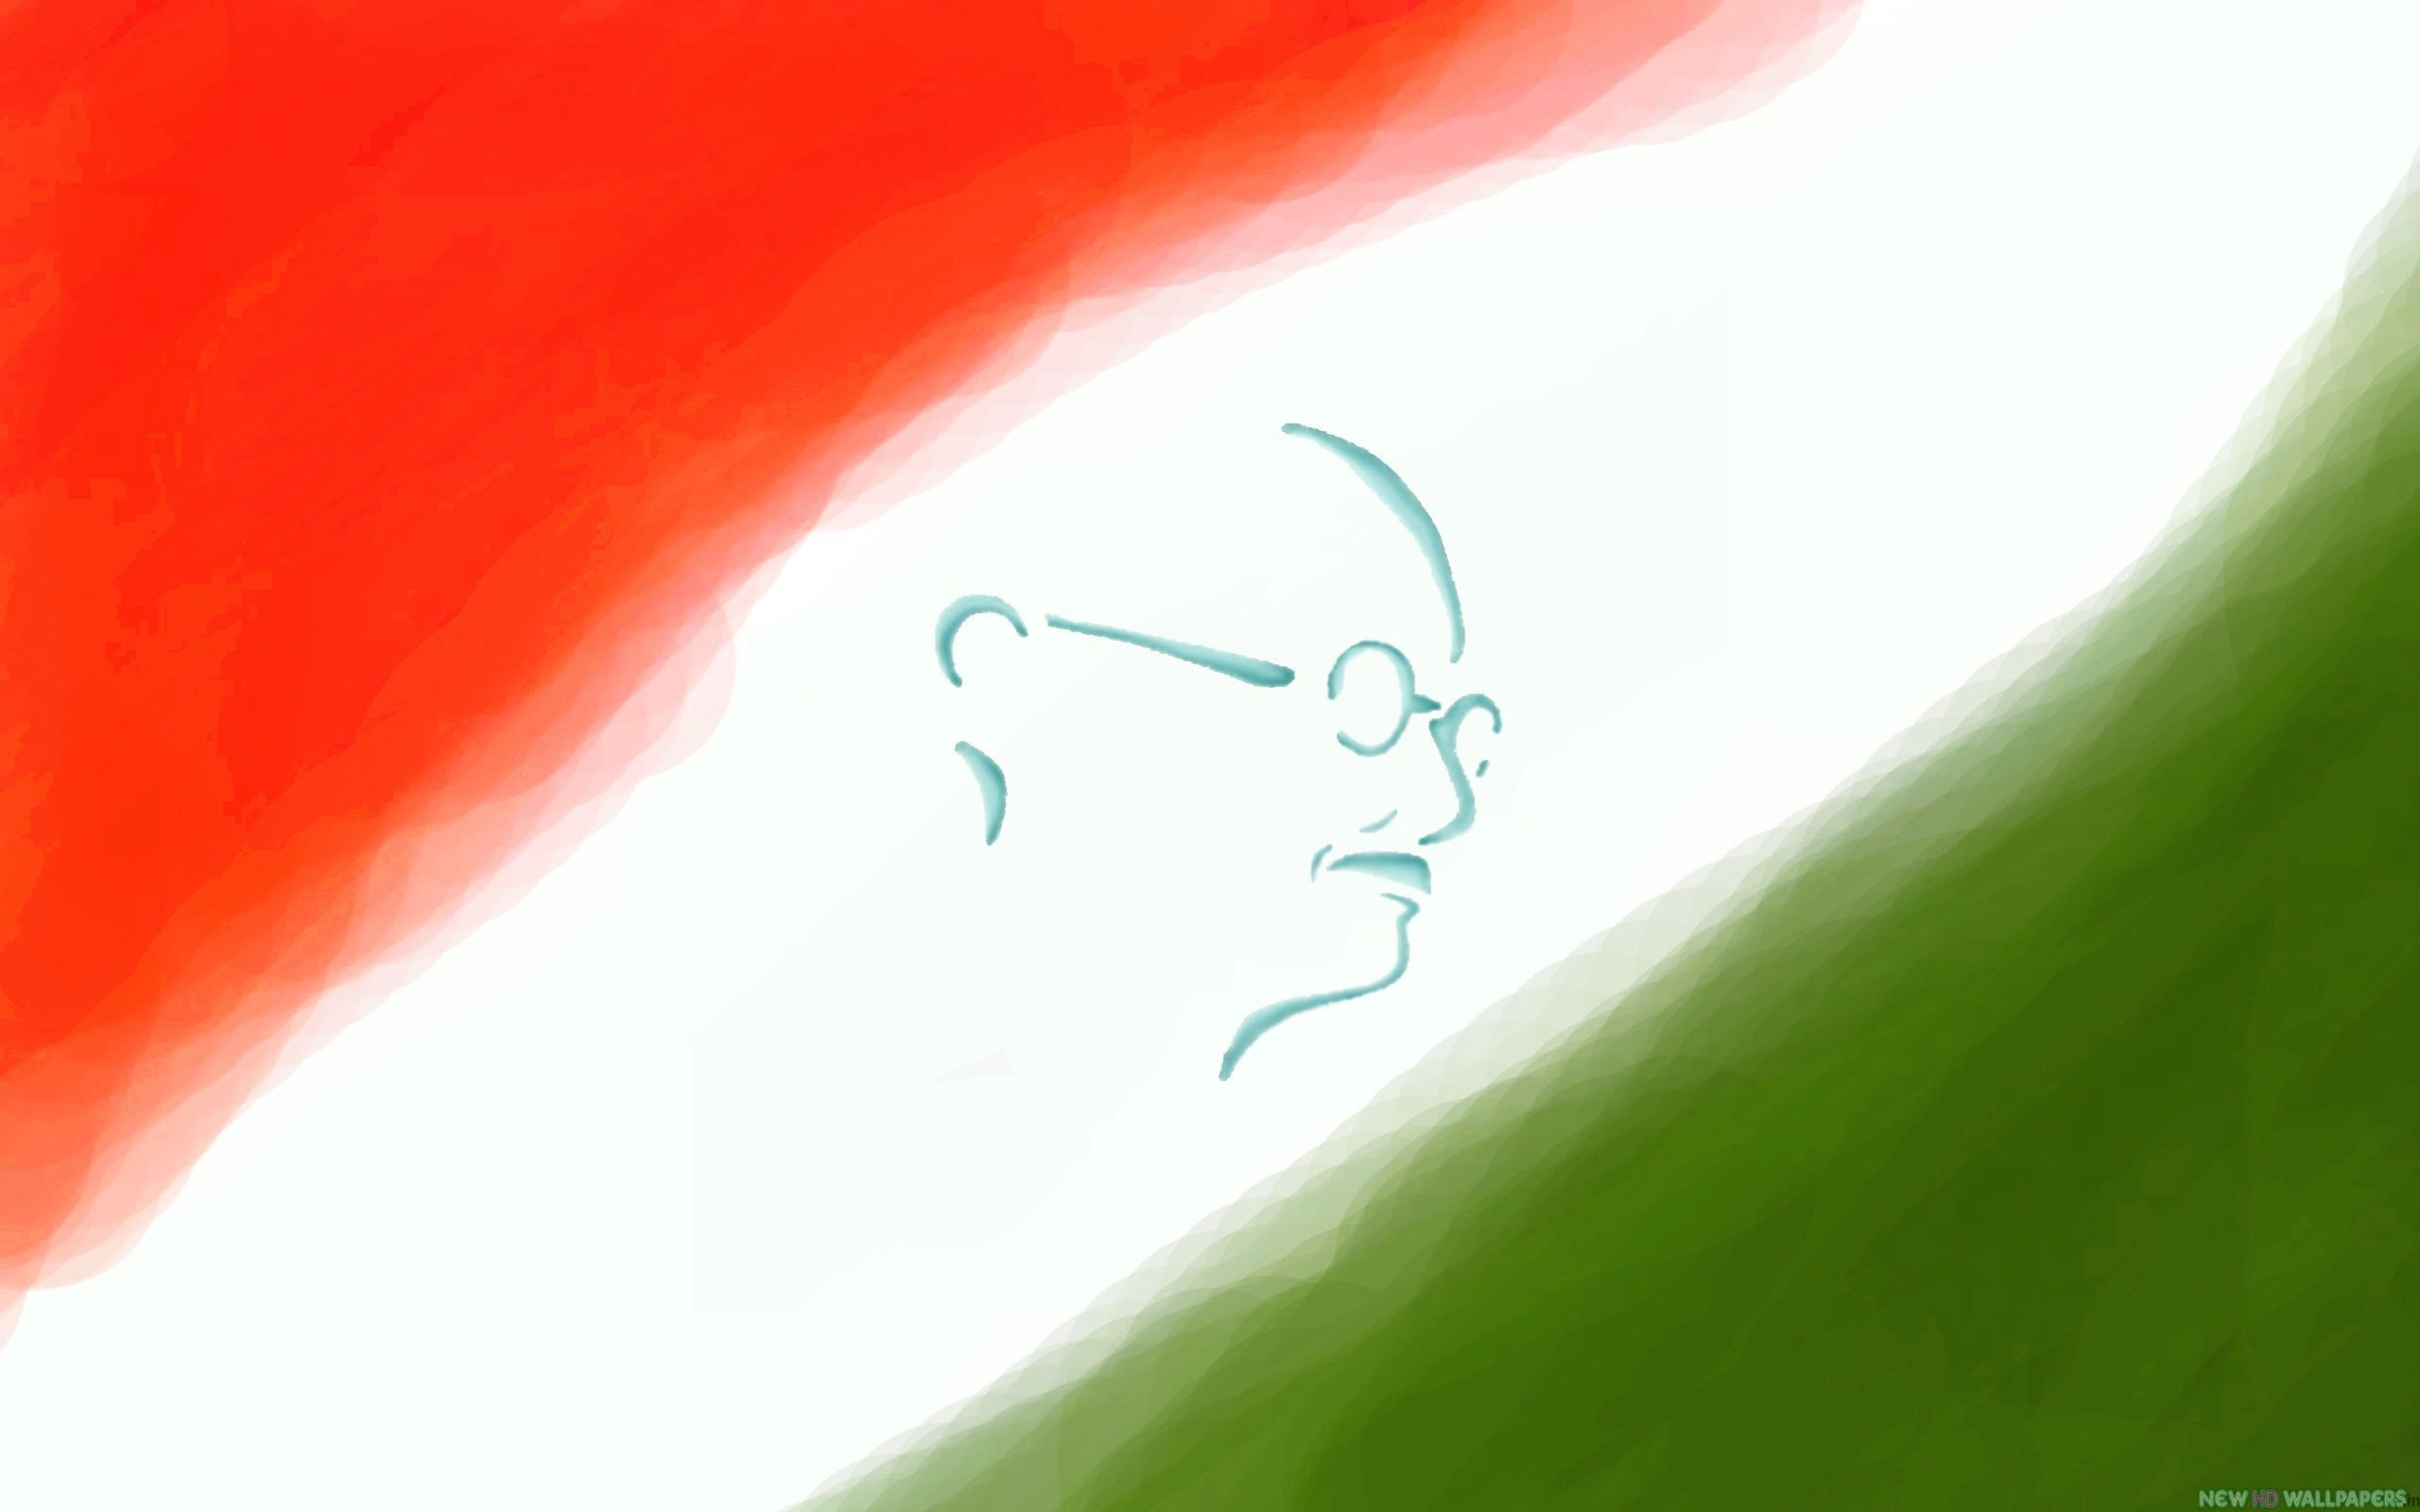 beautiful flag mahatma ghandiji photo 15 beautiful flag mahatma ghandiji photo